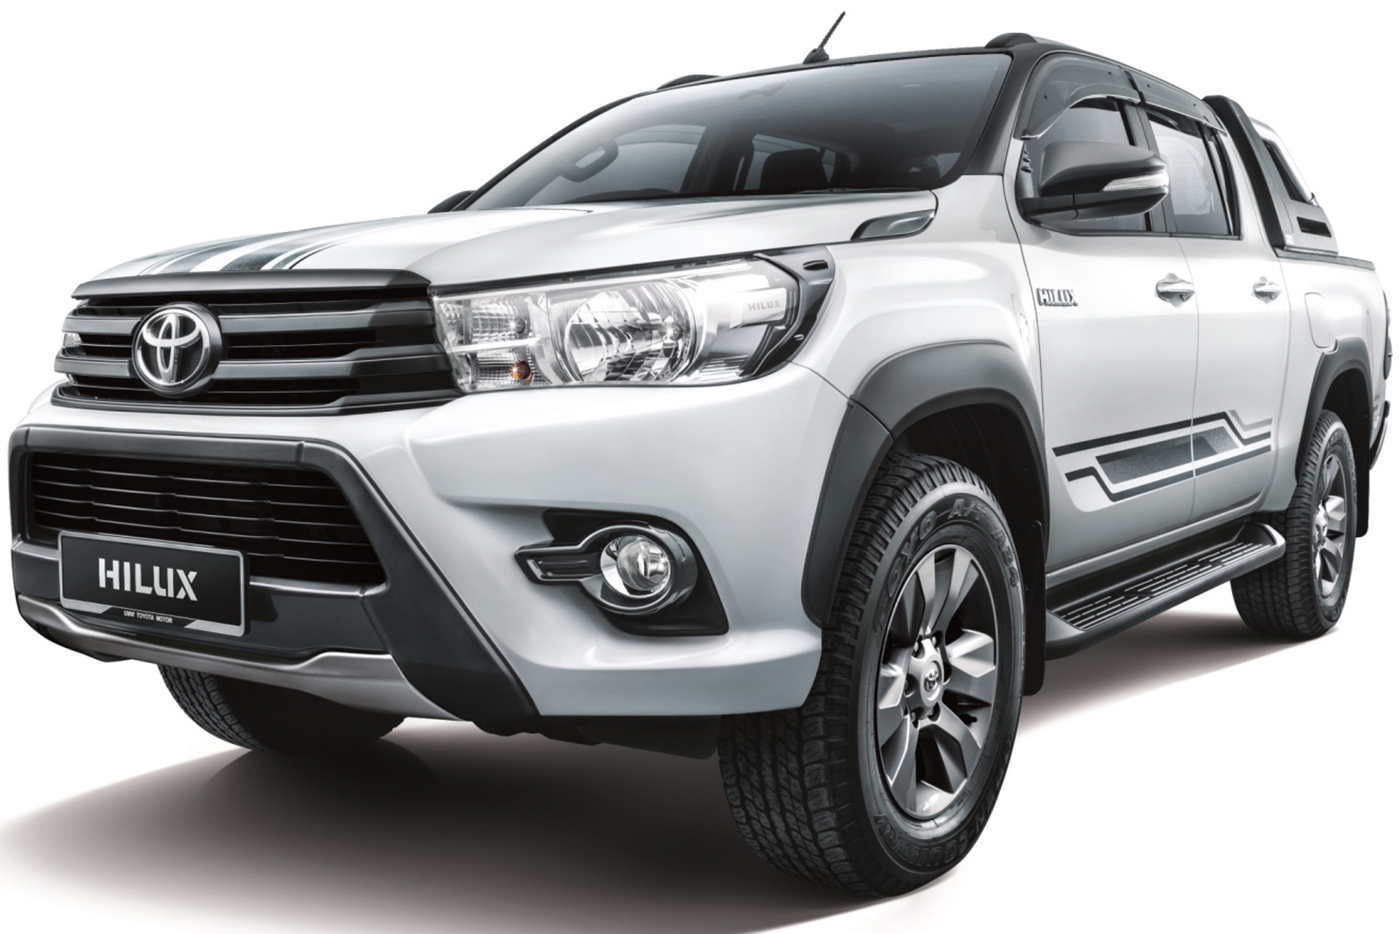 toyota-hilux-24g-limited-edition-6.jpg